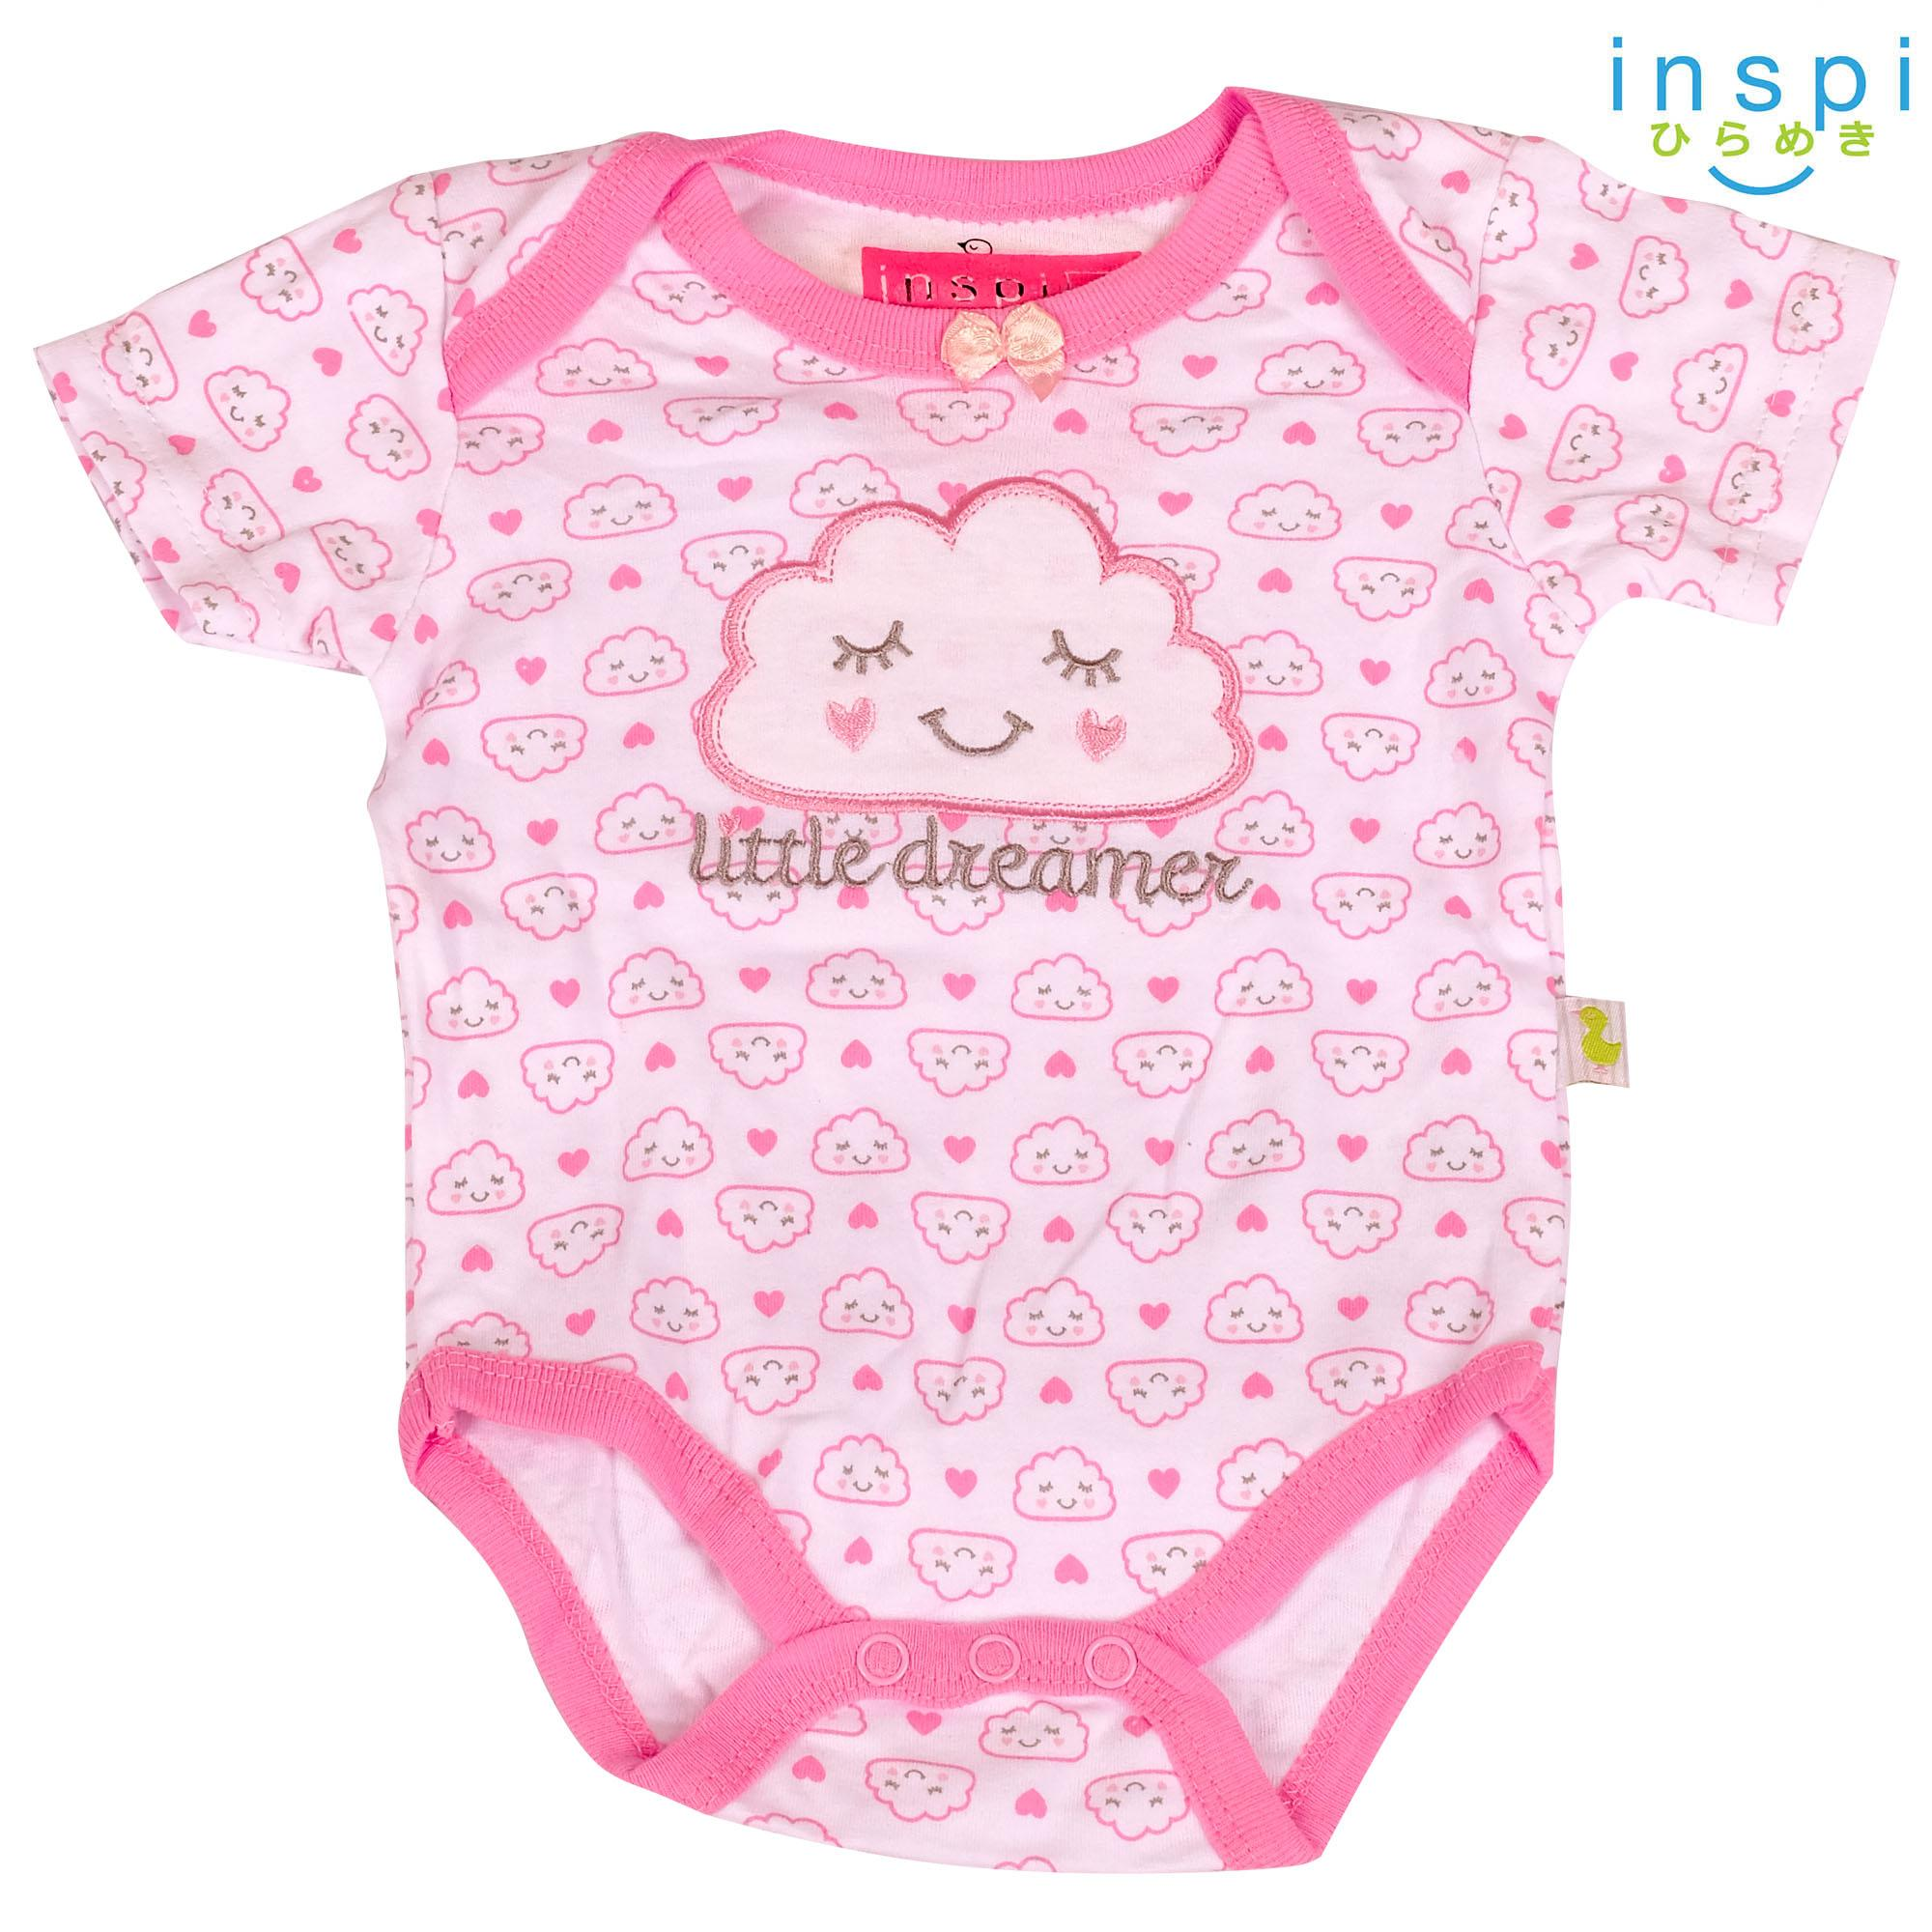 Girls Clothing and Accessories for sale Baby Clothing Accessories